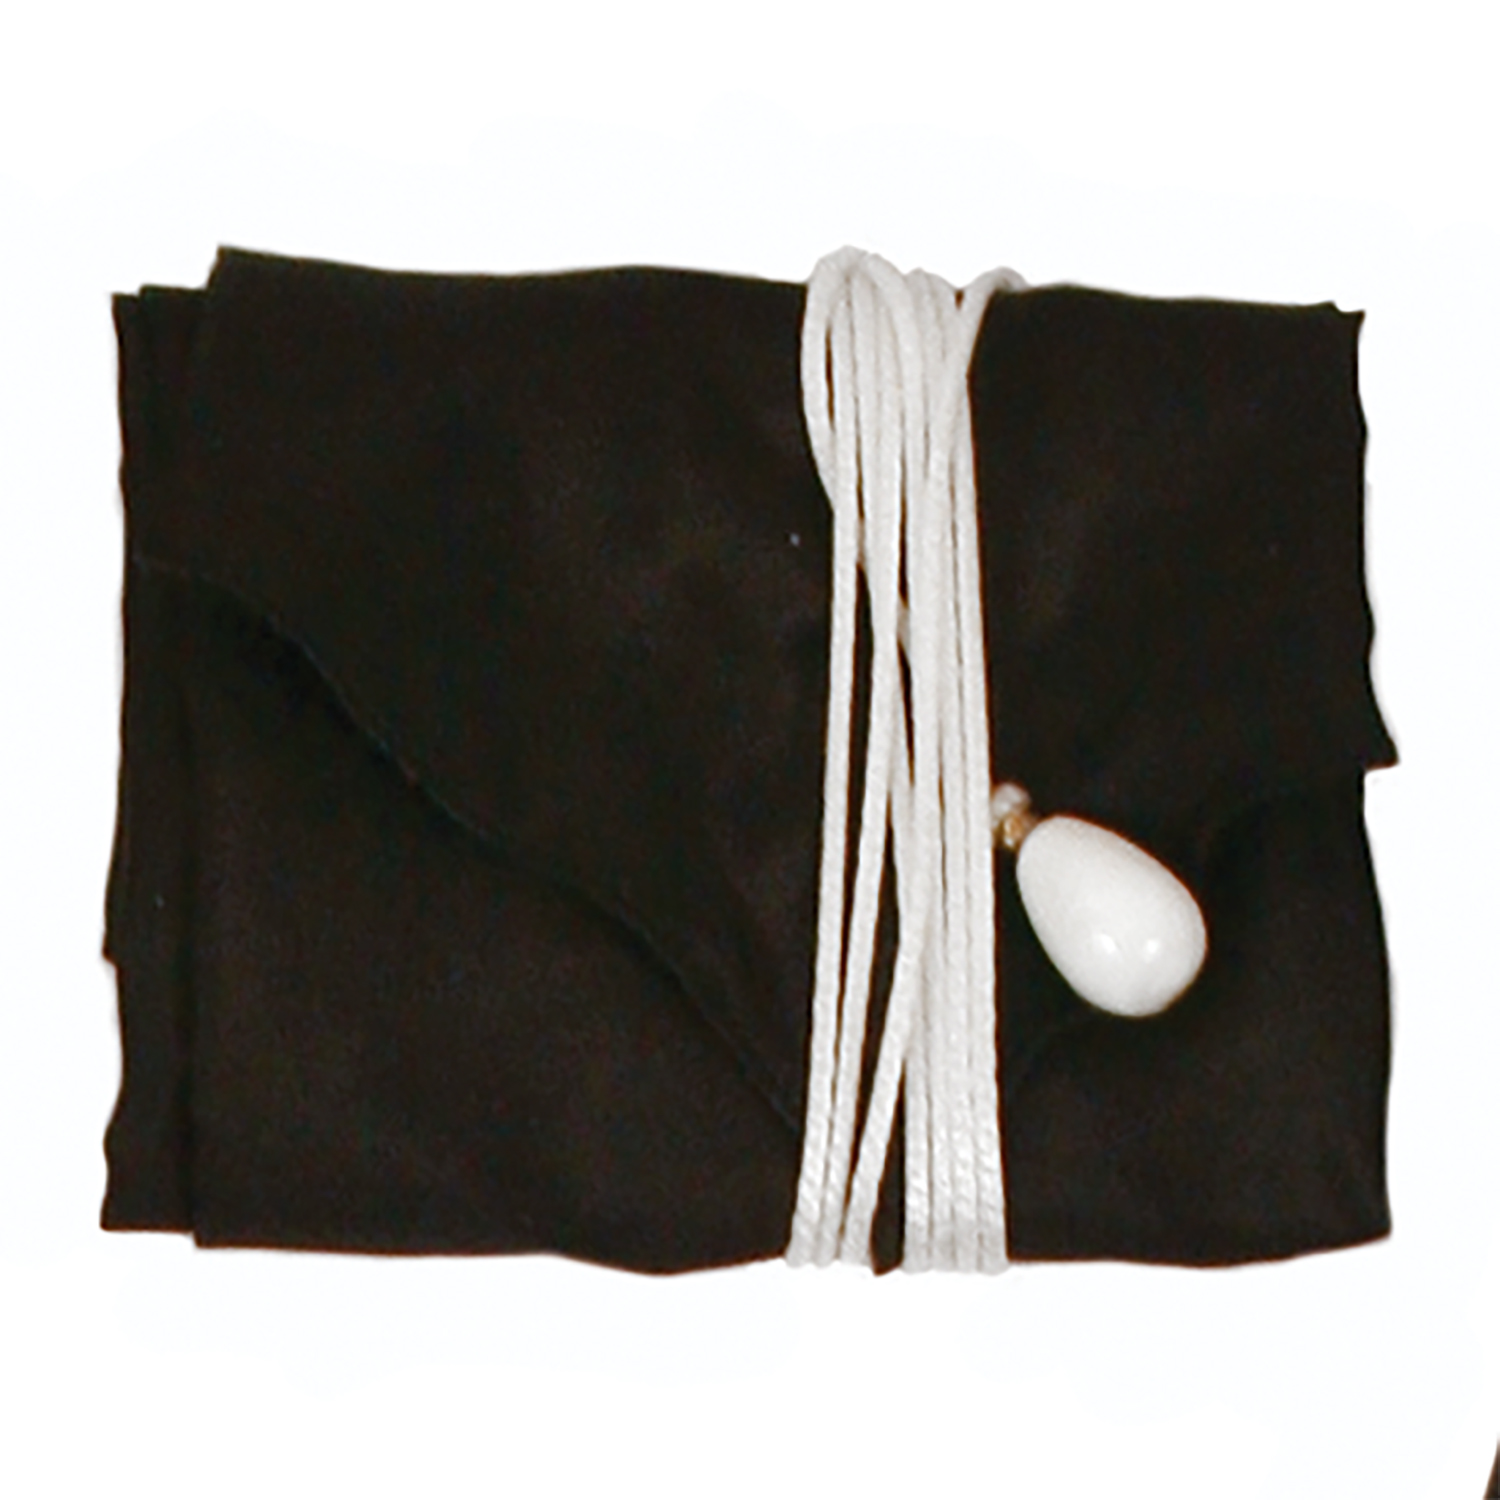 Swab,Hodge,BassClar,Black,Silk by Hodge Products Inc